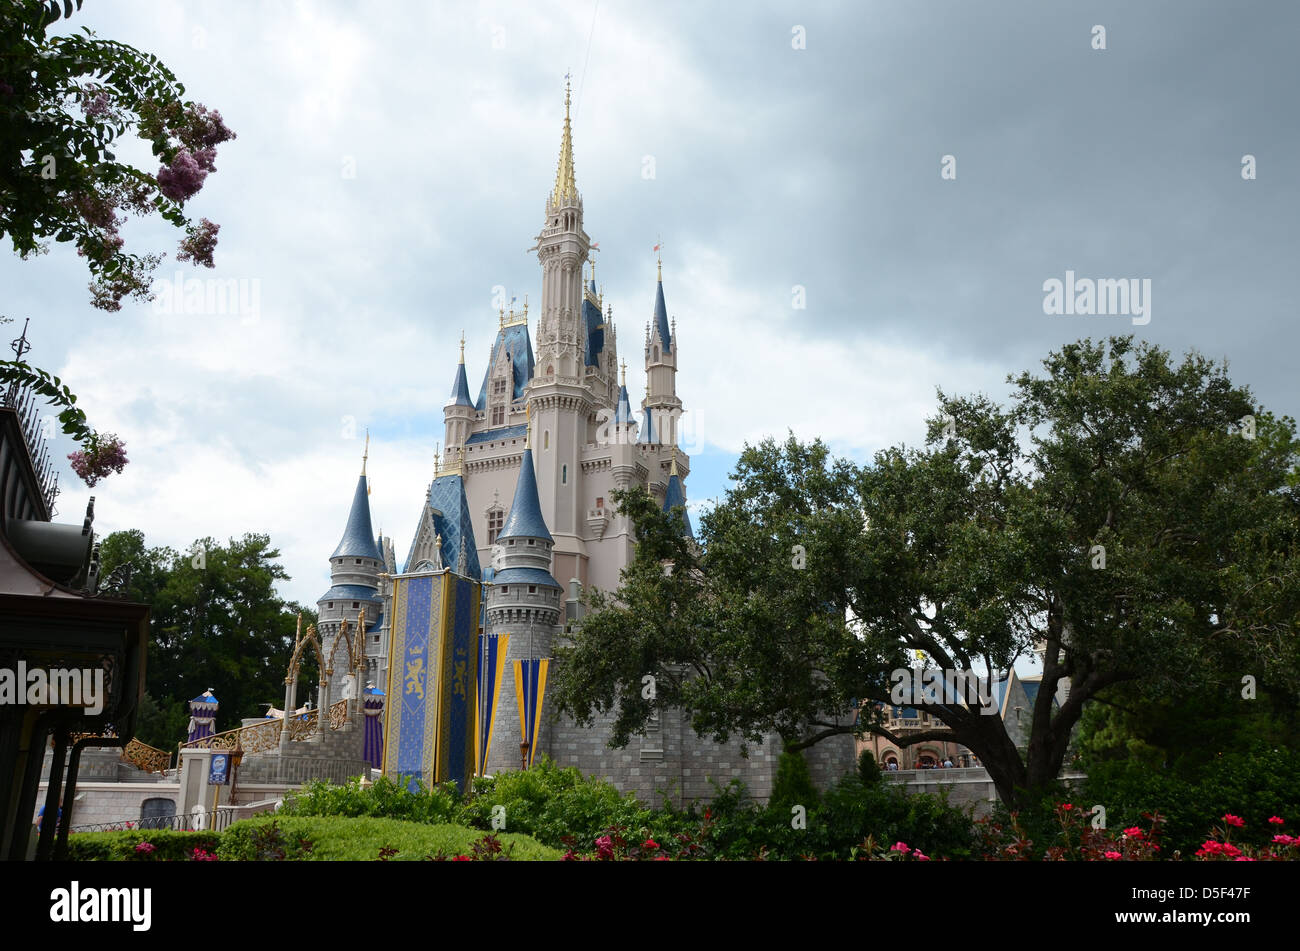 Cinderella castle magic kingdom walt disney world resort orlando florida usa